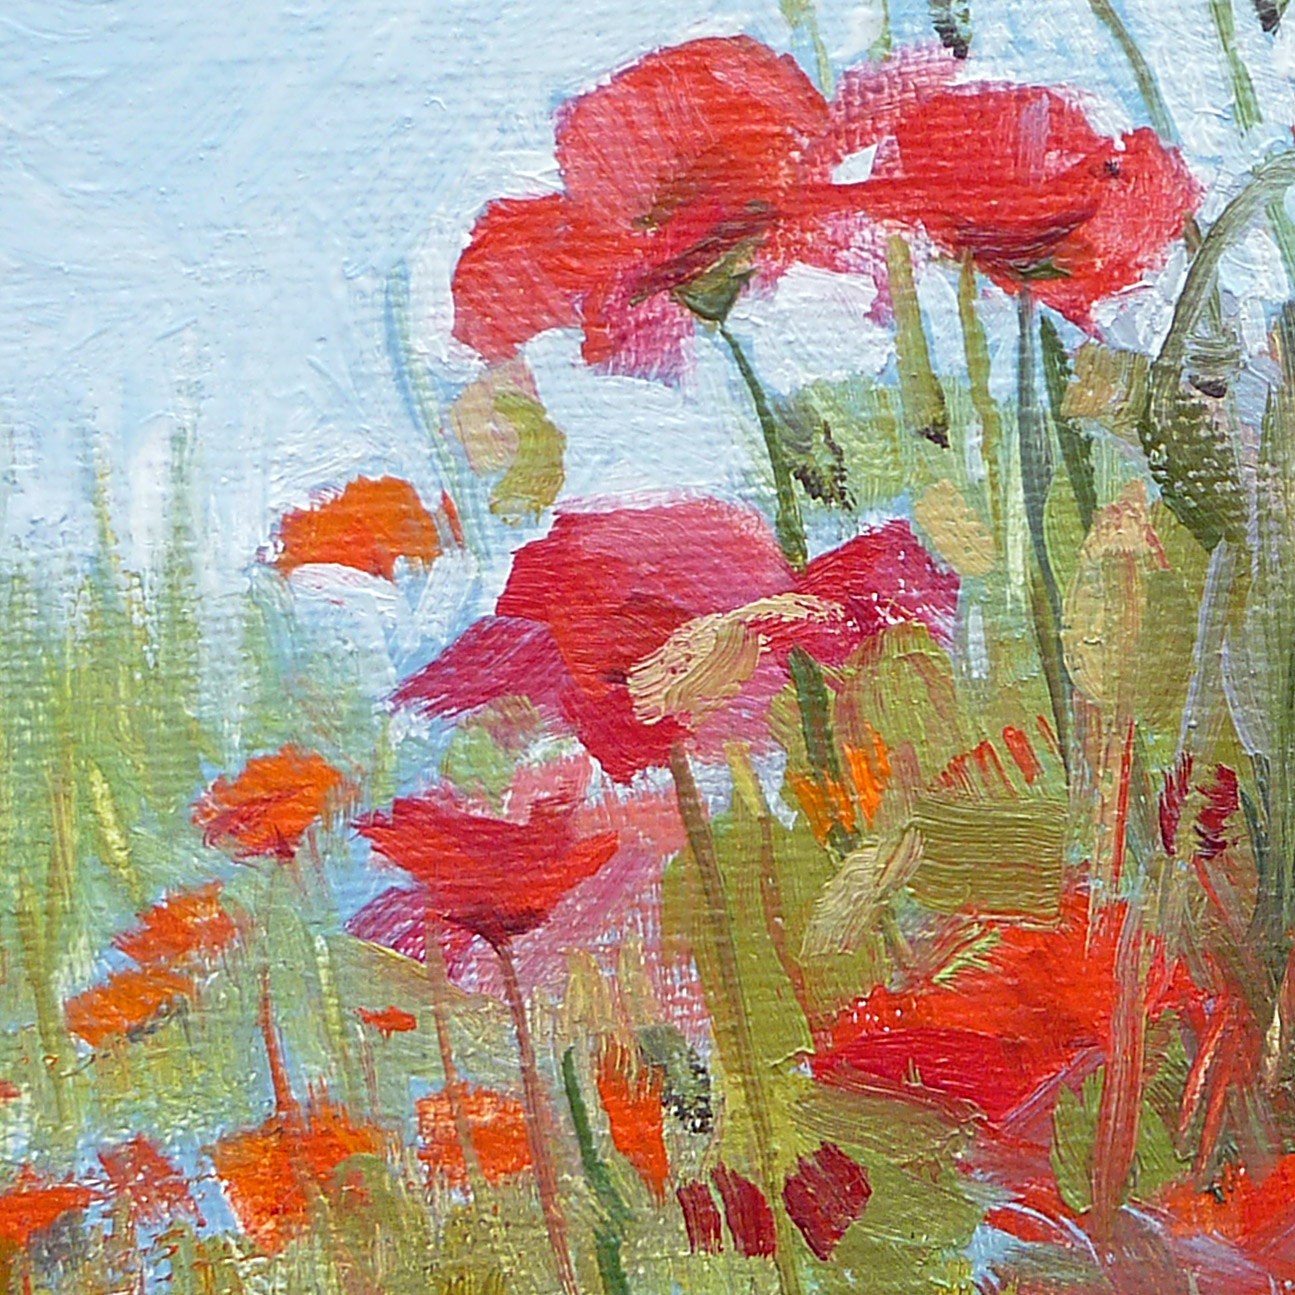 Poppy flowers poster thomas schmall poppy flowers poster mightylinksfo